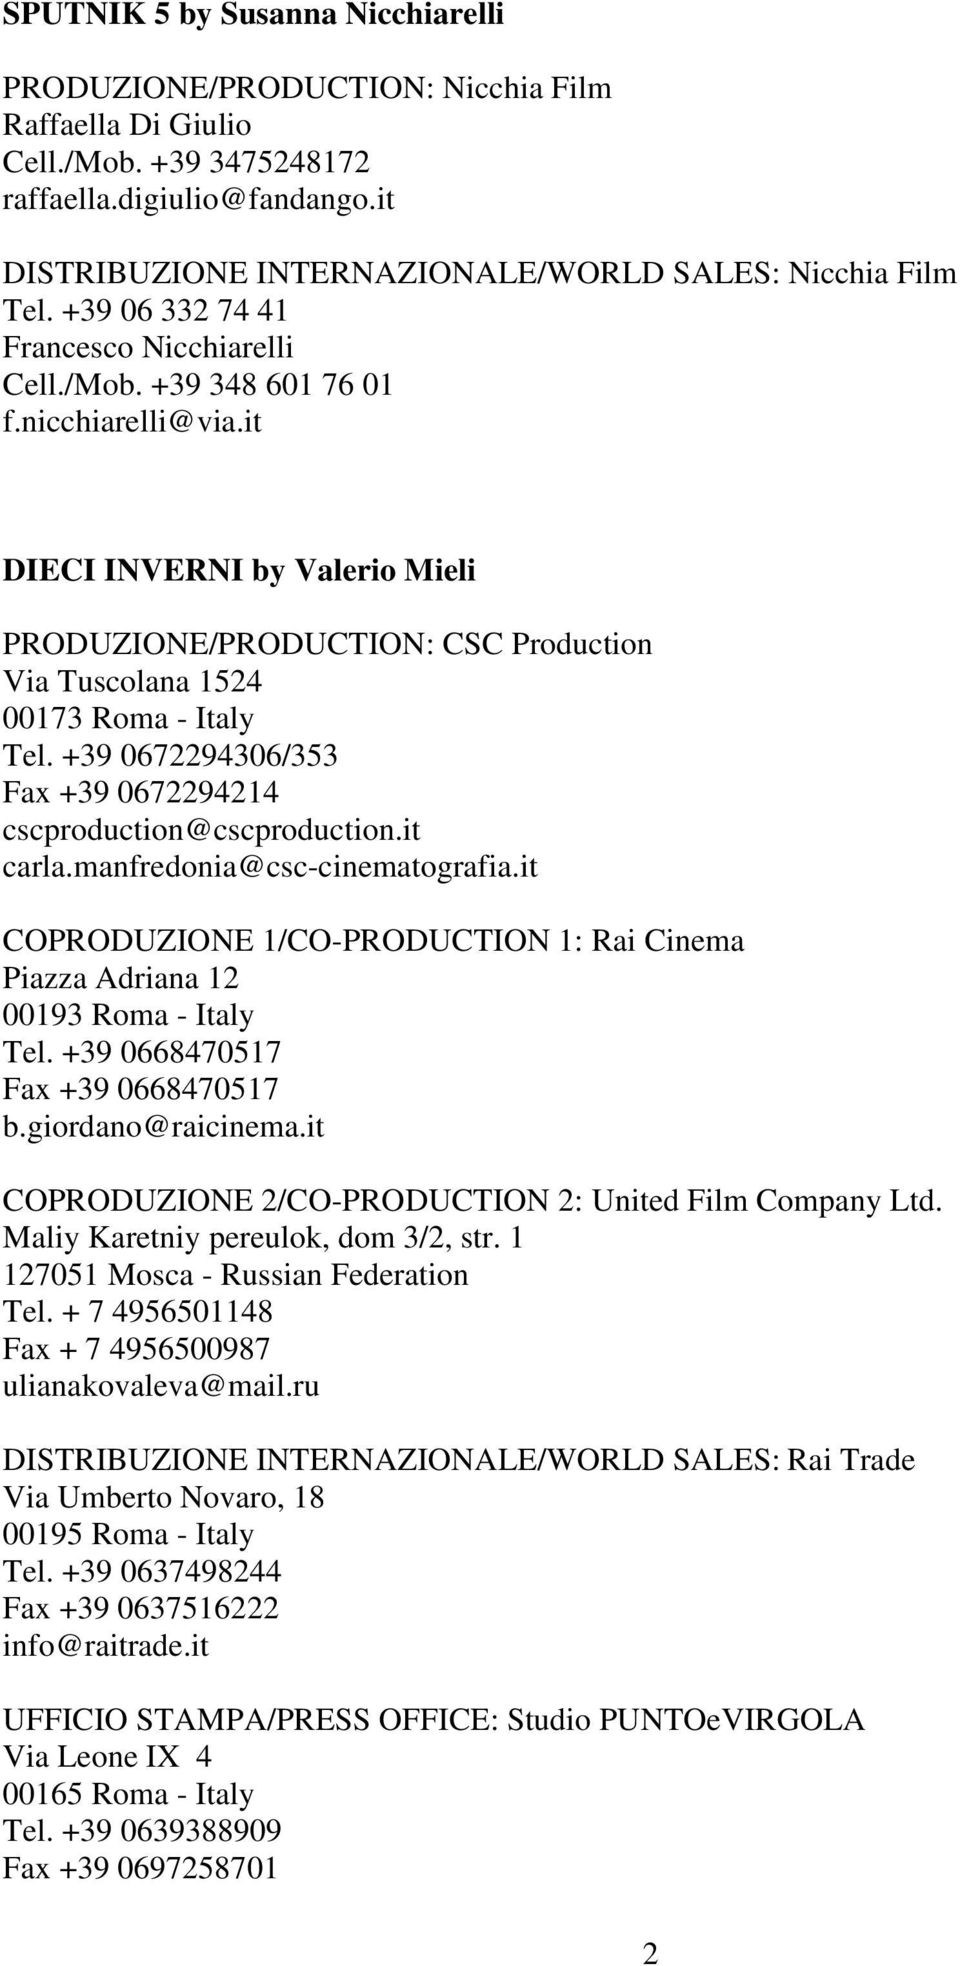 it DIECI INVERNI by Valerio Mieli PRODUZIONE/PRODUCTION: CSC Production Via Tuscolana 1524 00173 Roma - Italy Tel. +39 0672294306/353 Fax +39 0672294214 cscproduction@cscproduction.it carla.